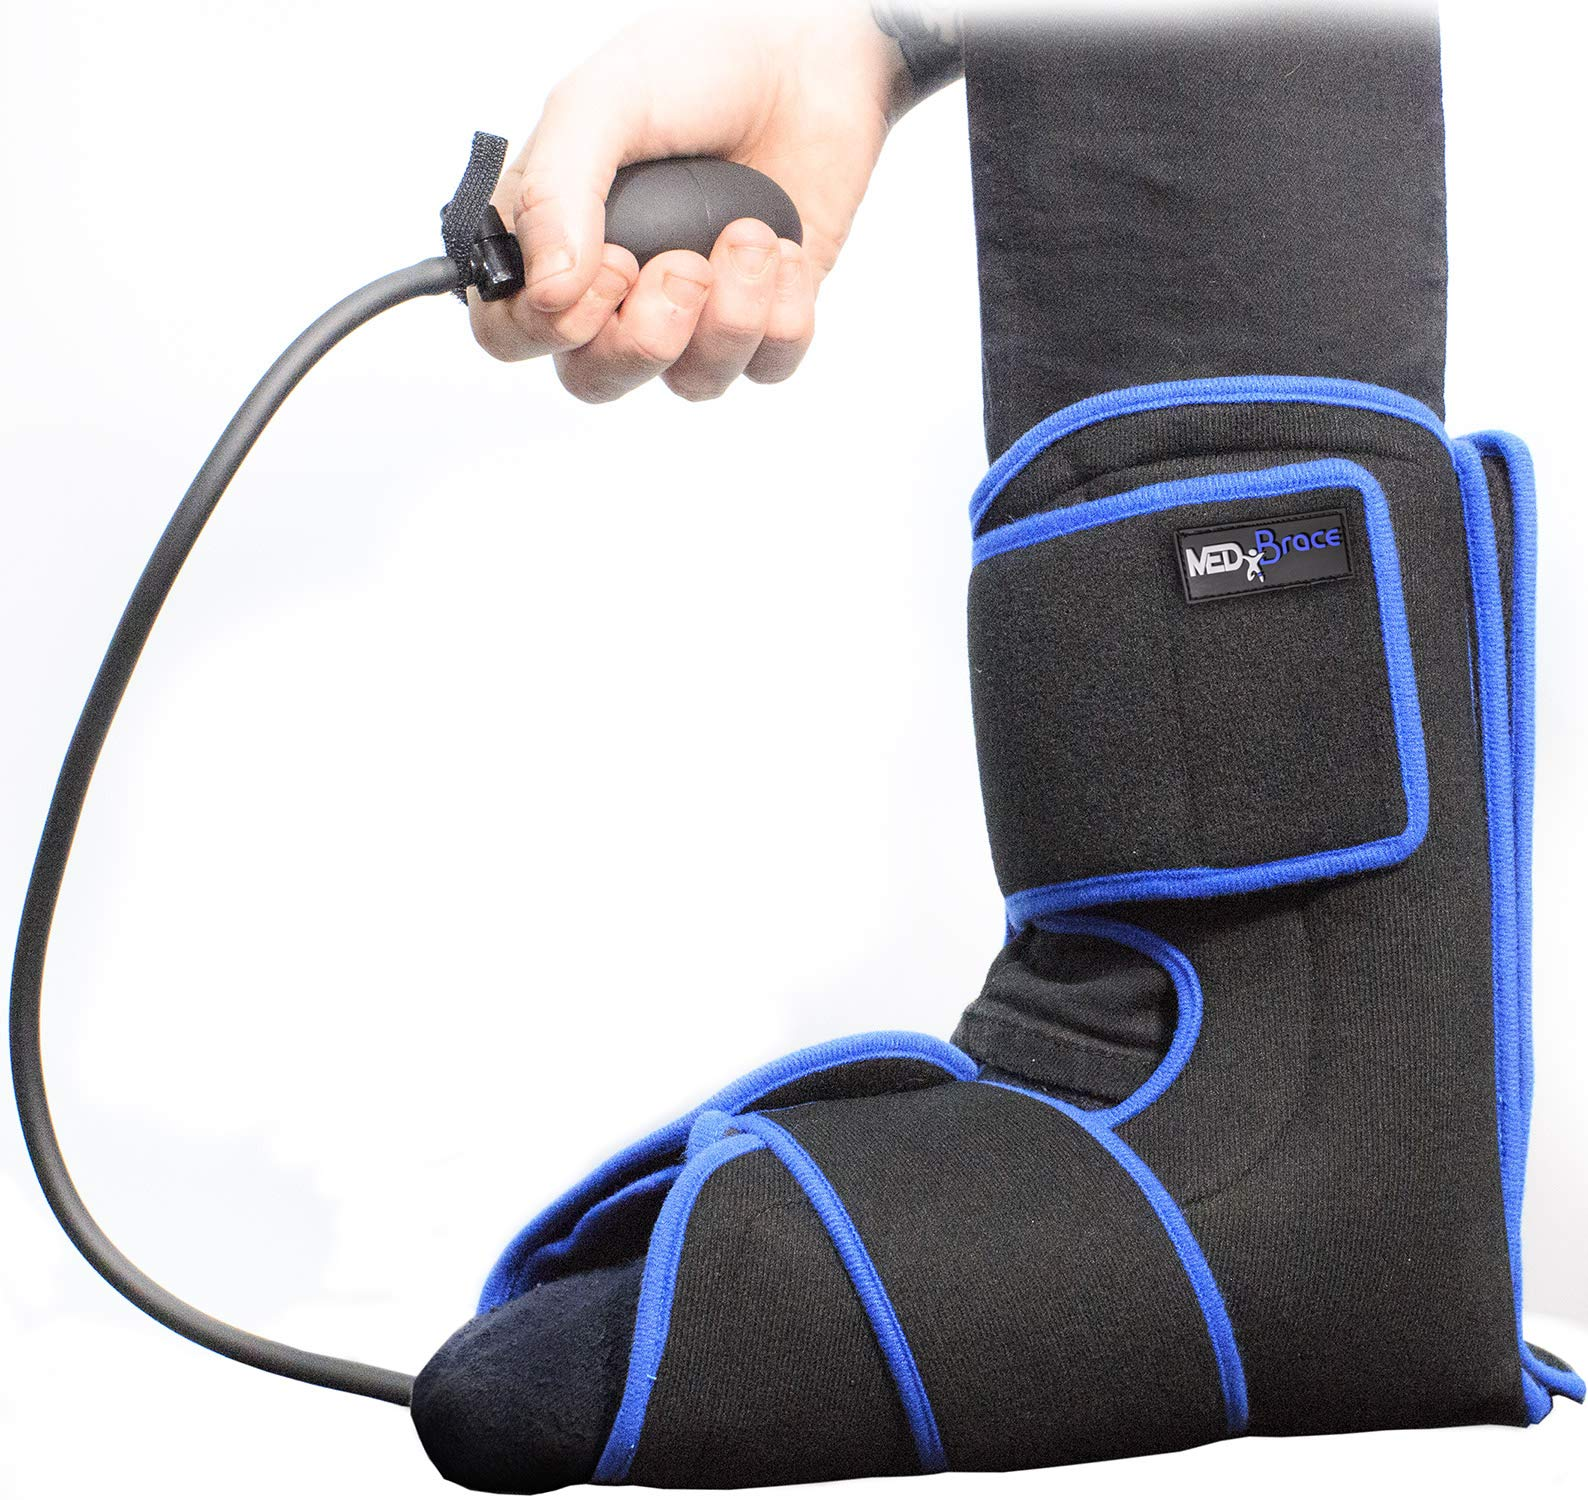 MEDiBrace Ankle Ice Gel Pack Cryotherapy Injury Cuff Superior Cold Compression Therapy for Sports Professionals Universal Fit